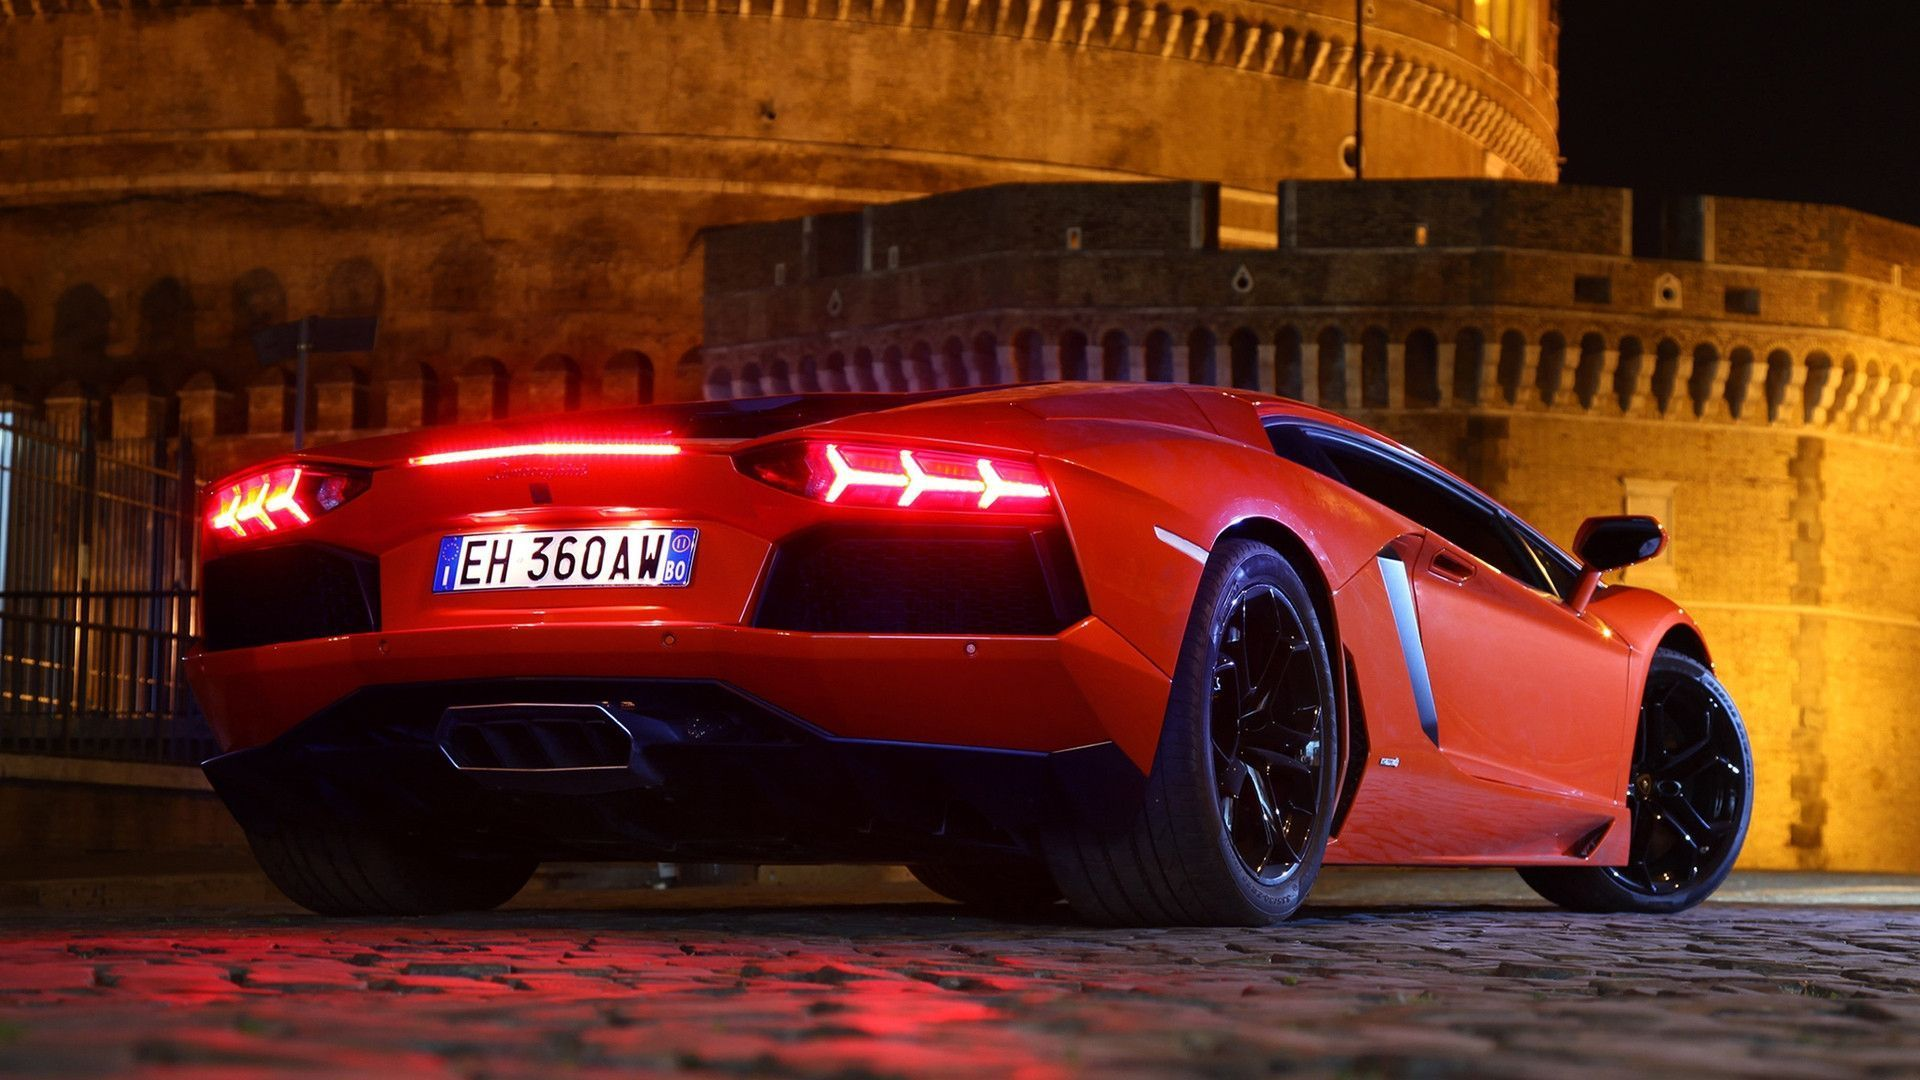 Lamborghini Wallpapers Full Hd Free Download With Images Red